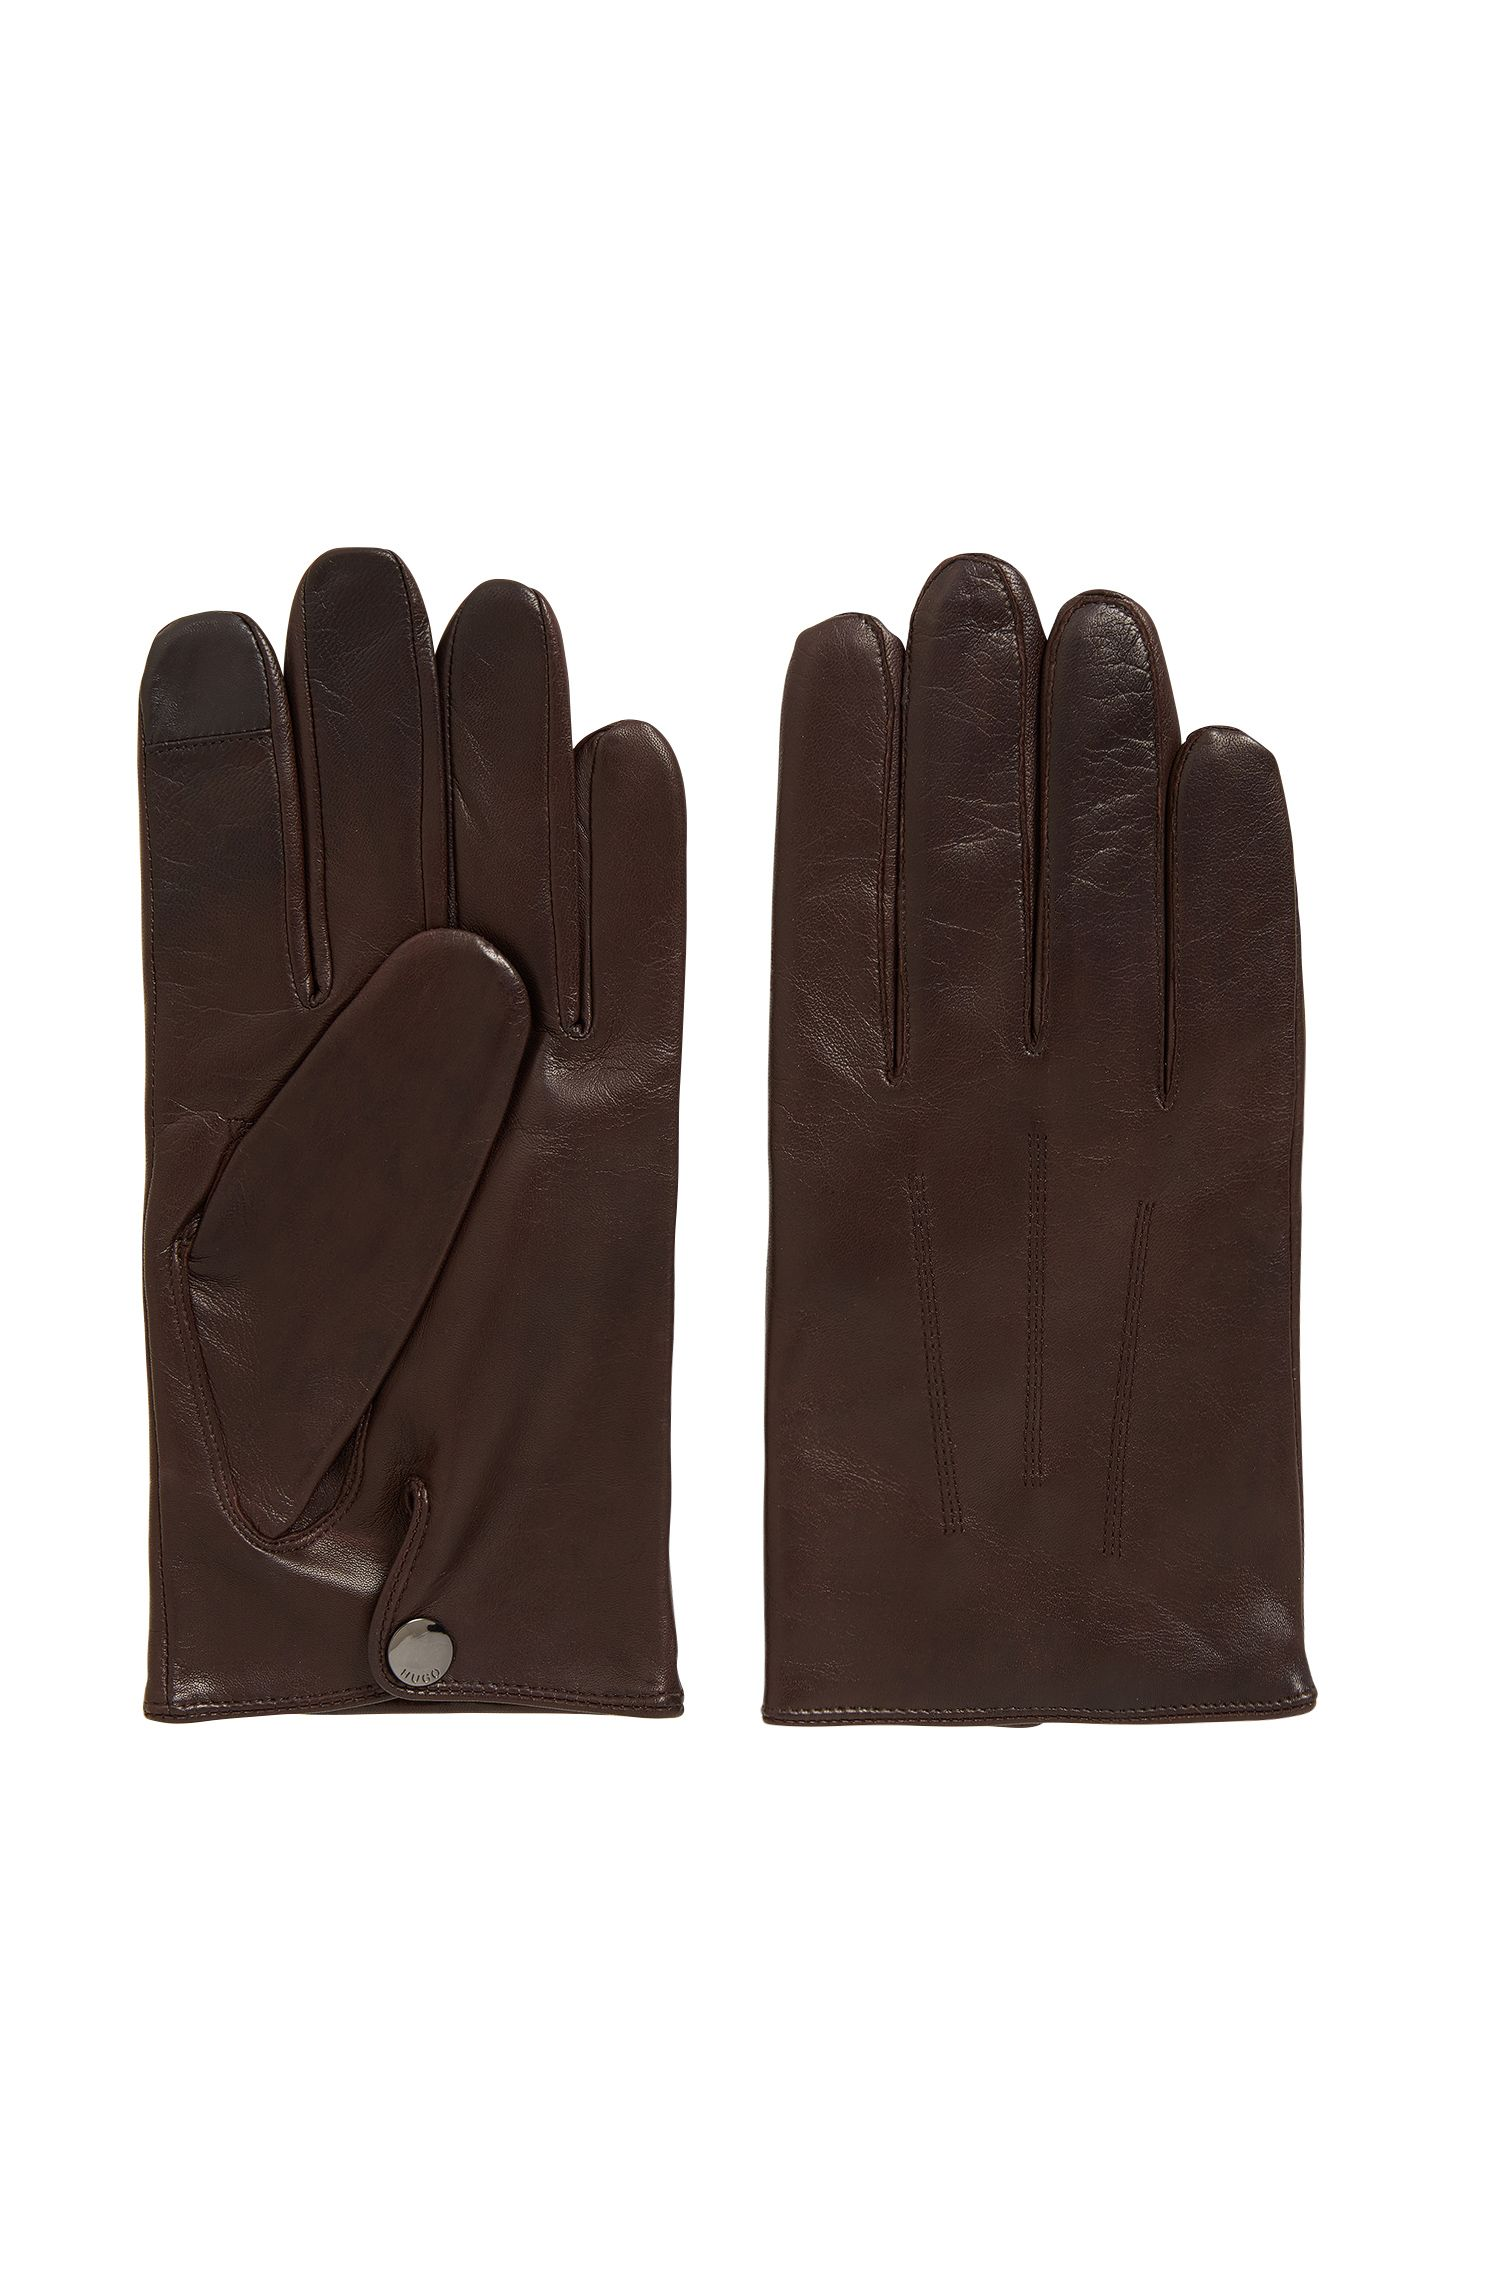 Cashmere-lined touchscreen gloves in nappa leather